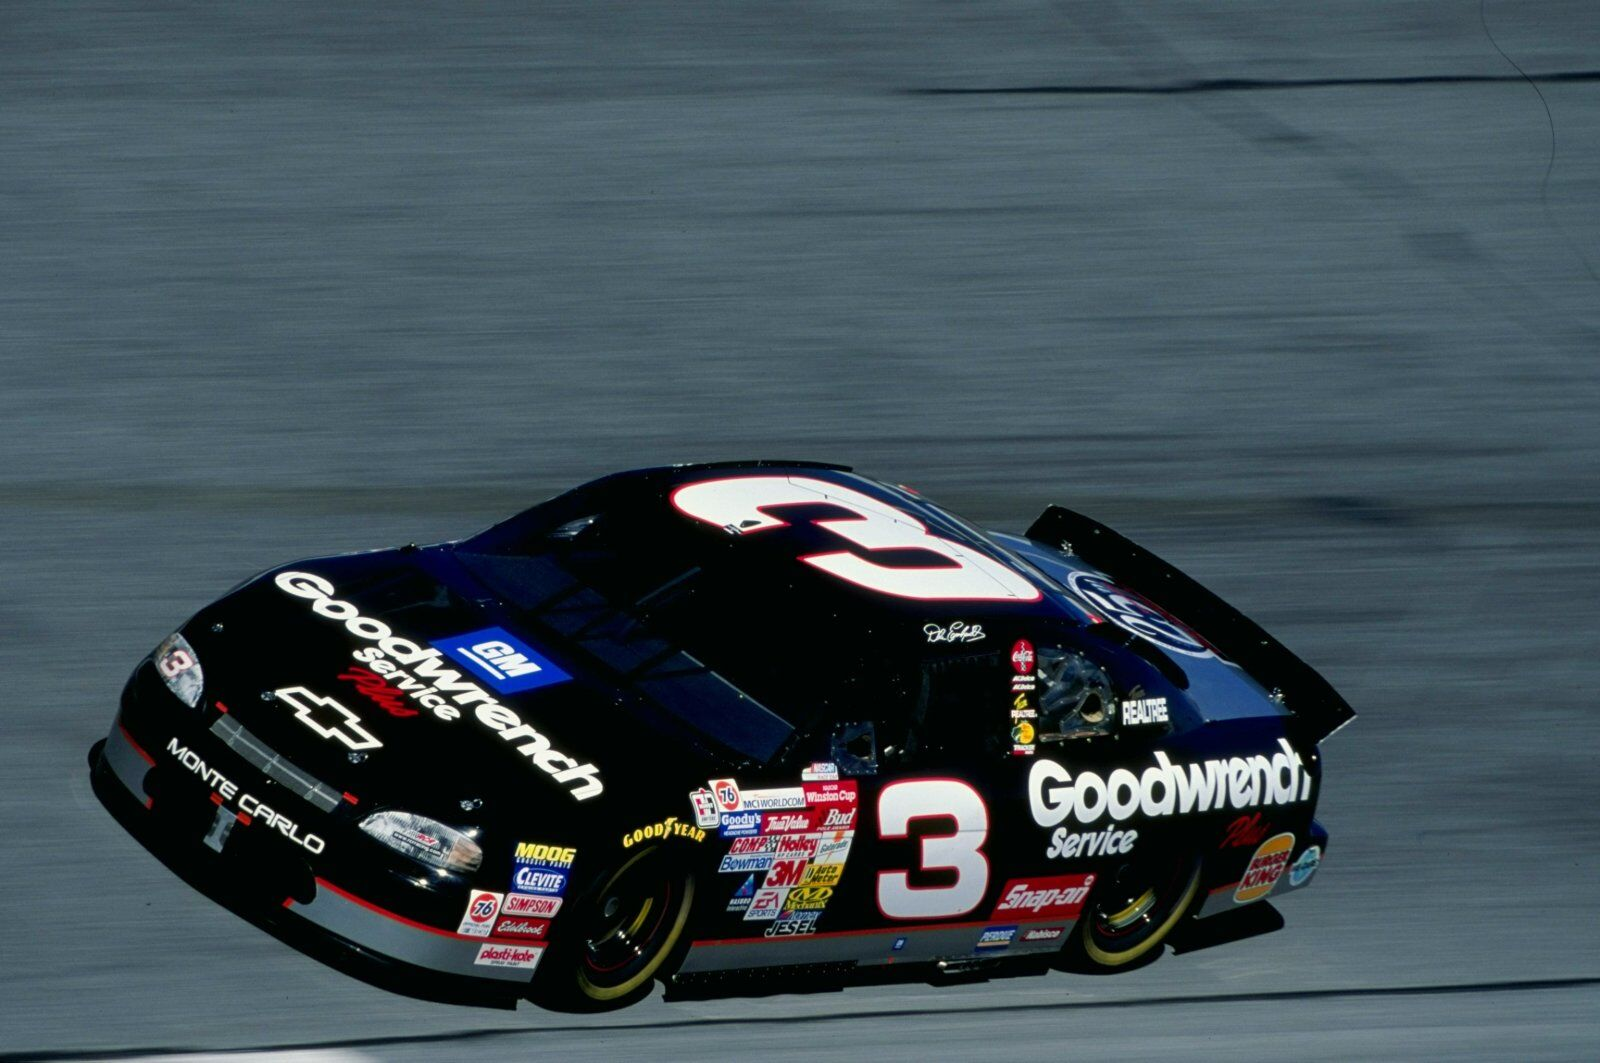 NASCAR: Richard Childress to pace Talladega field in Dale Earnhardt's car